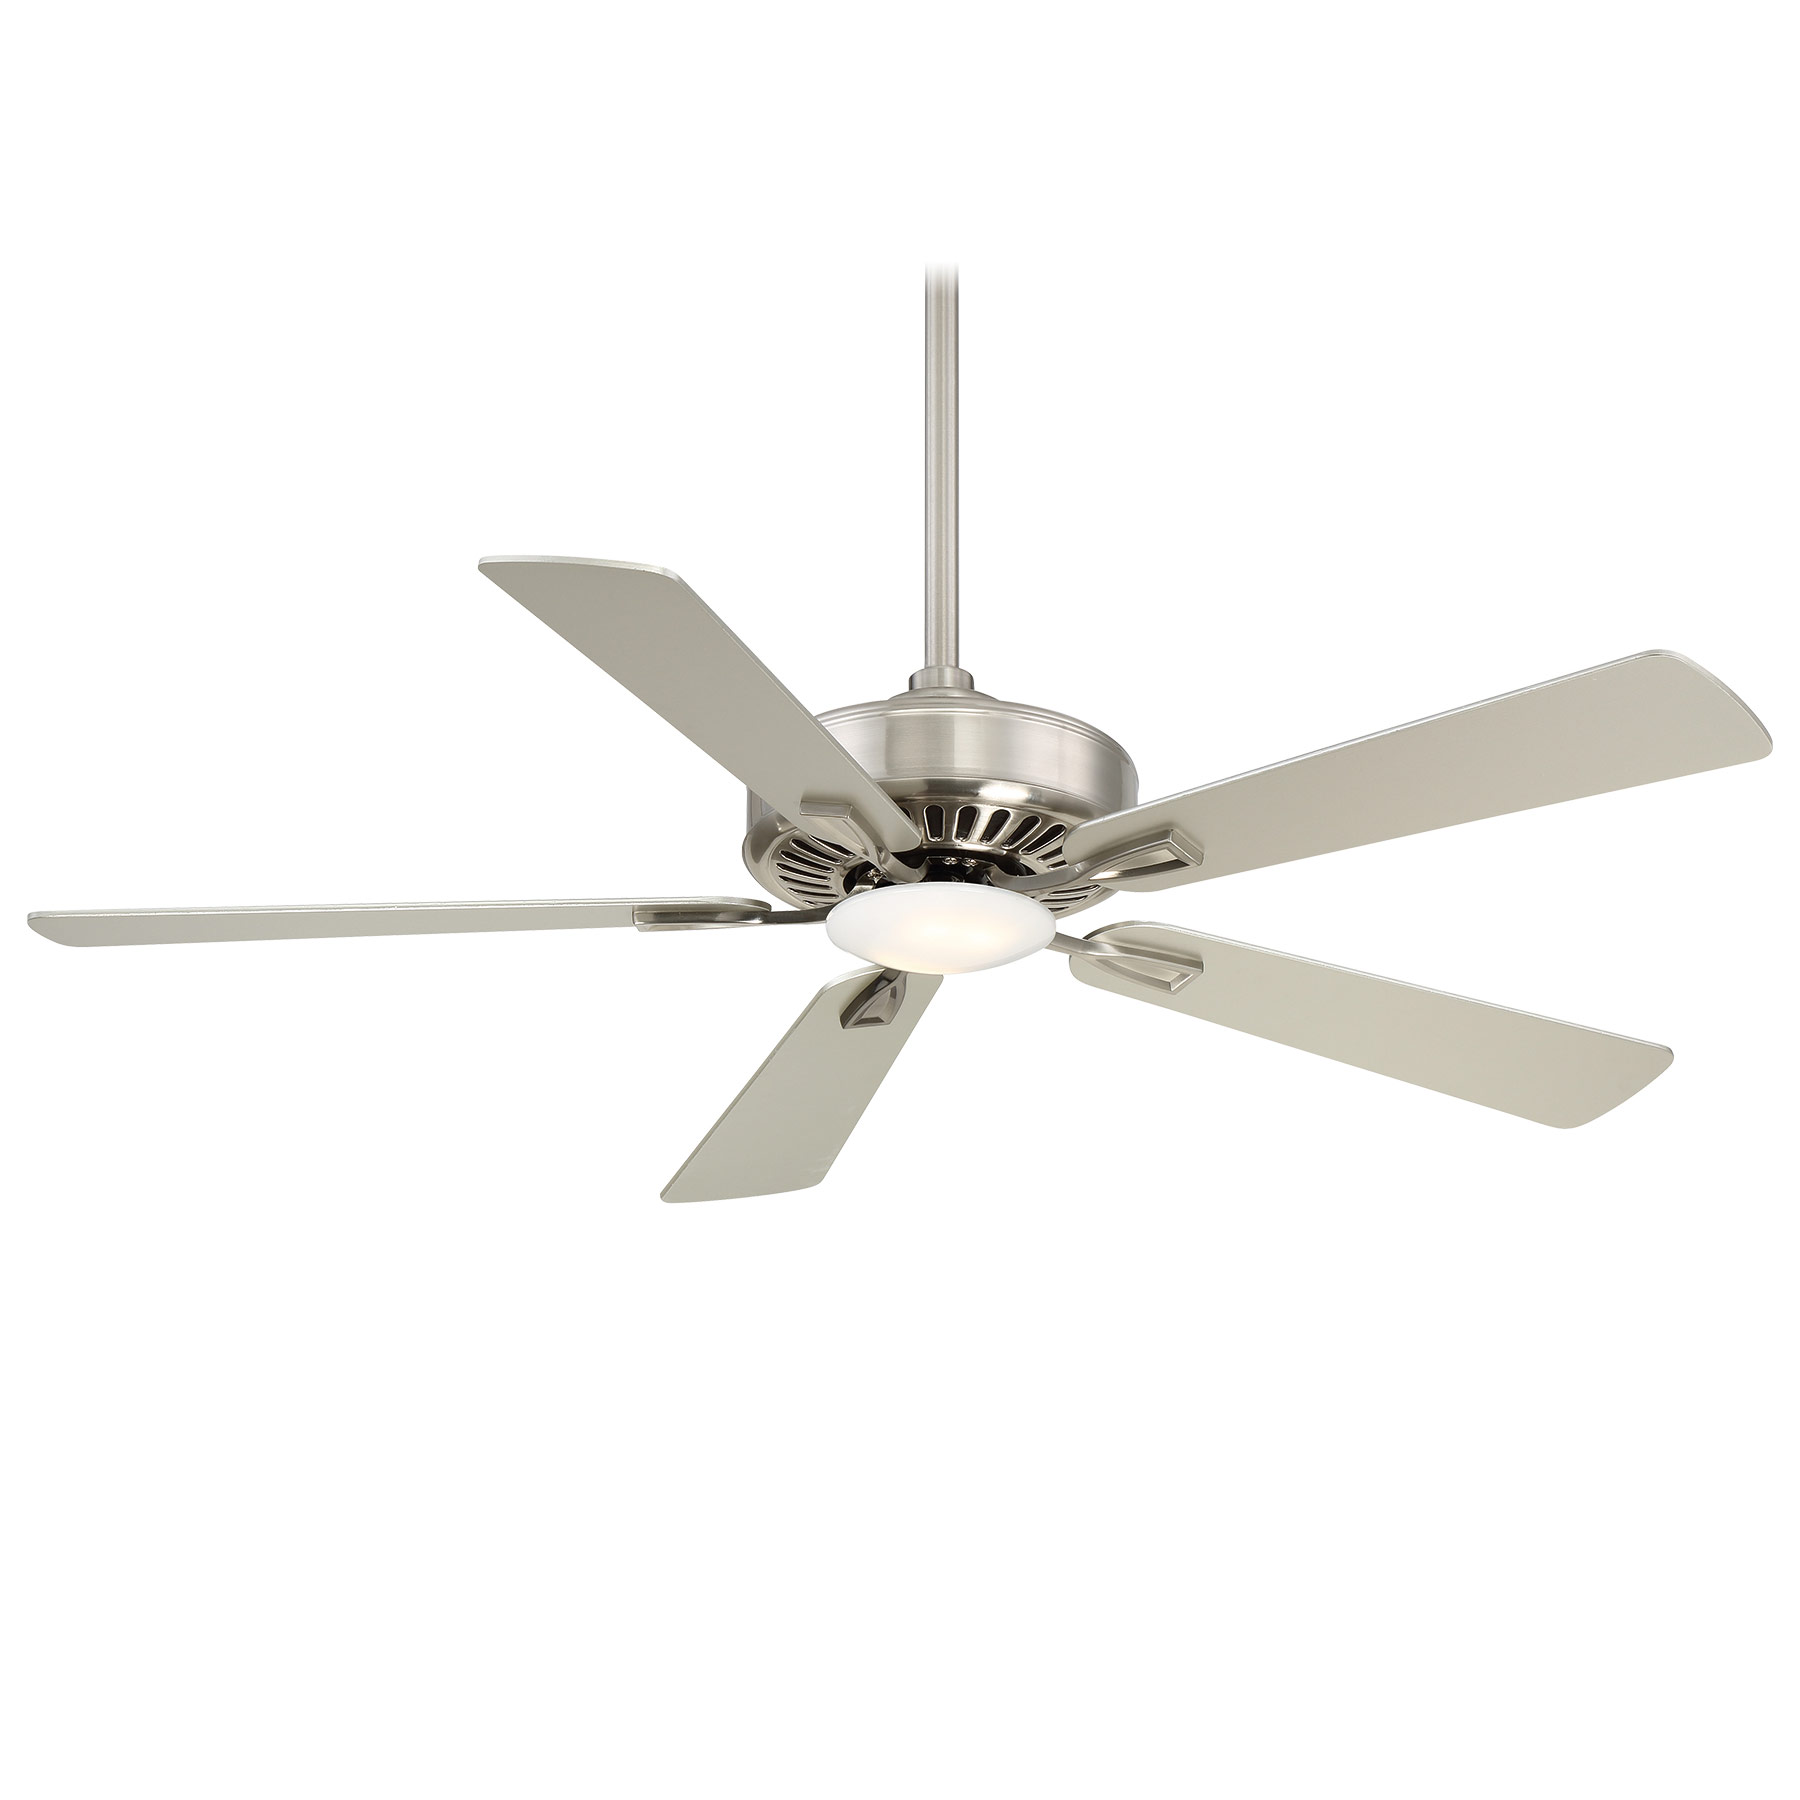 ceiling prices curl marble white silver fan online orient mm amazon low in buy dp at india electric pearl